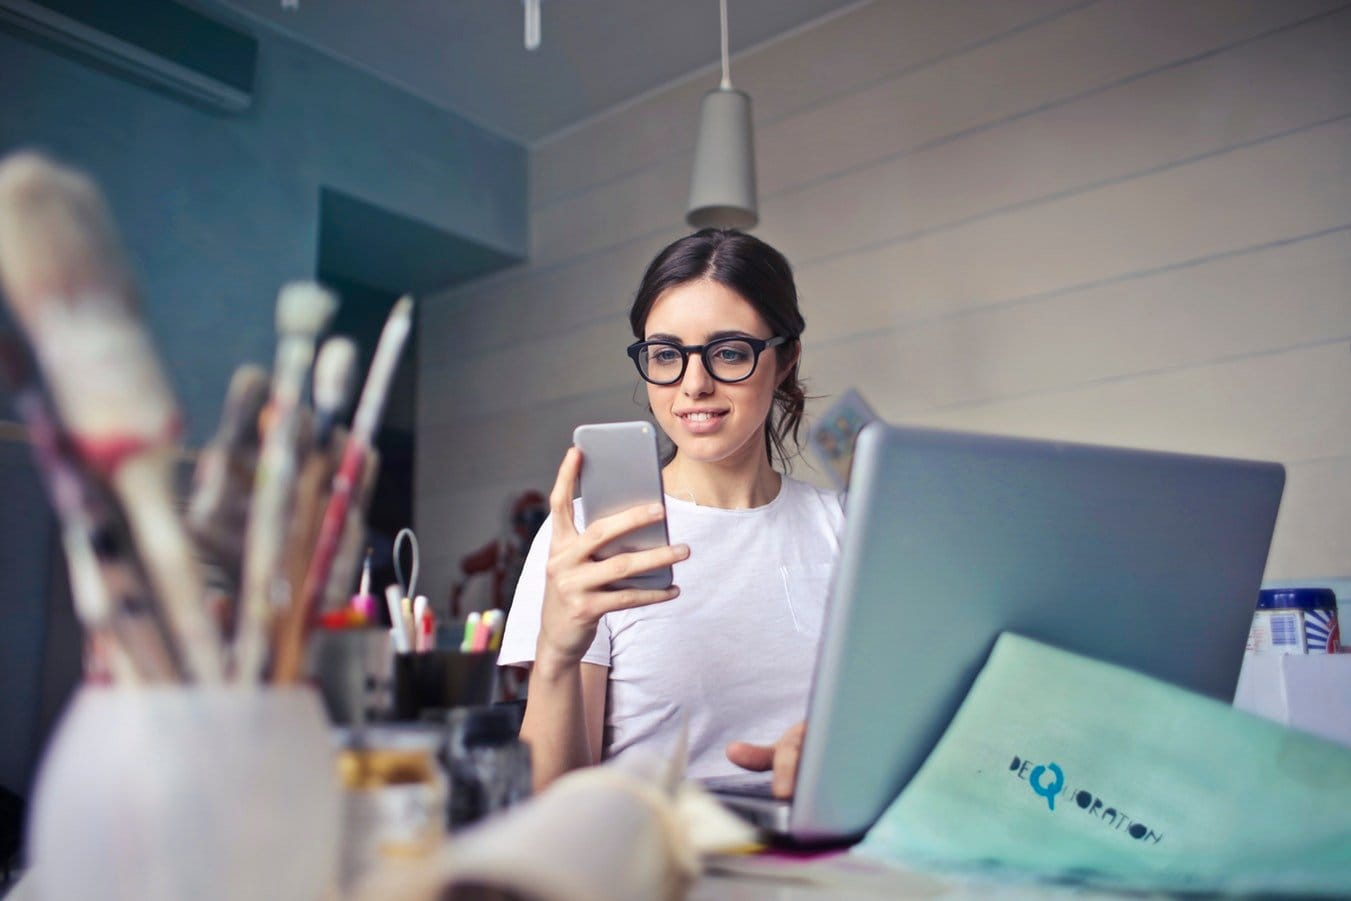 Distracted and disengaged: A sign of unhappiness at work 1